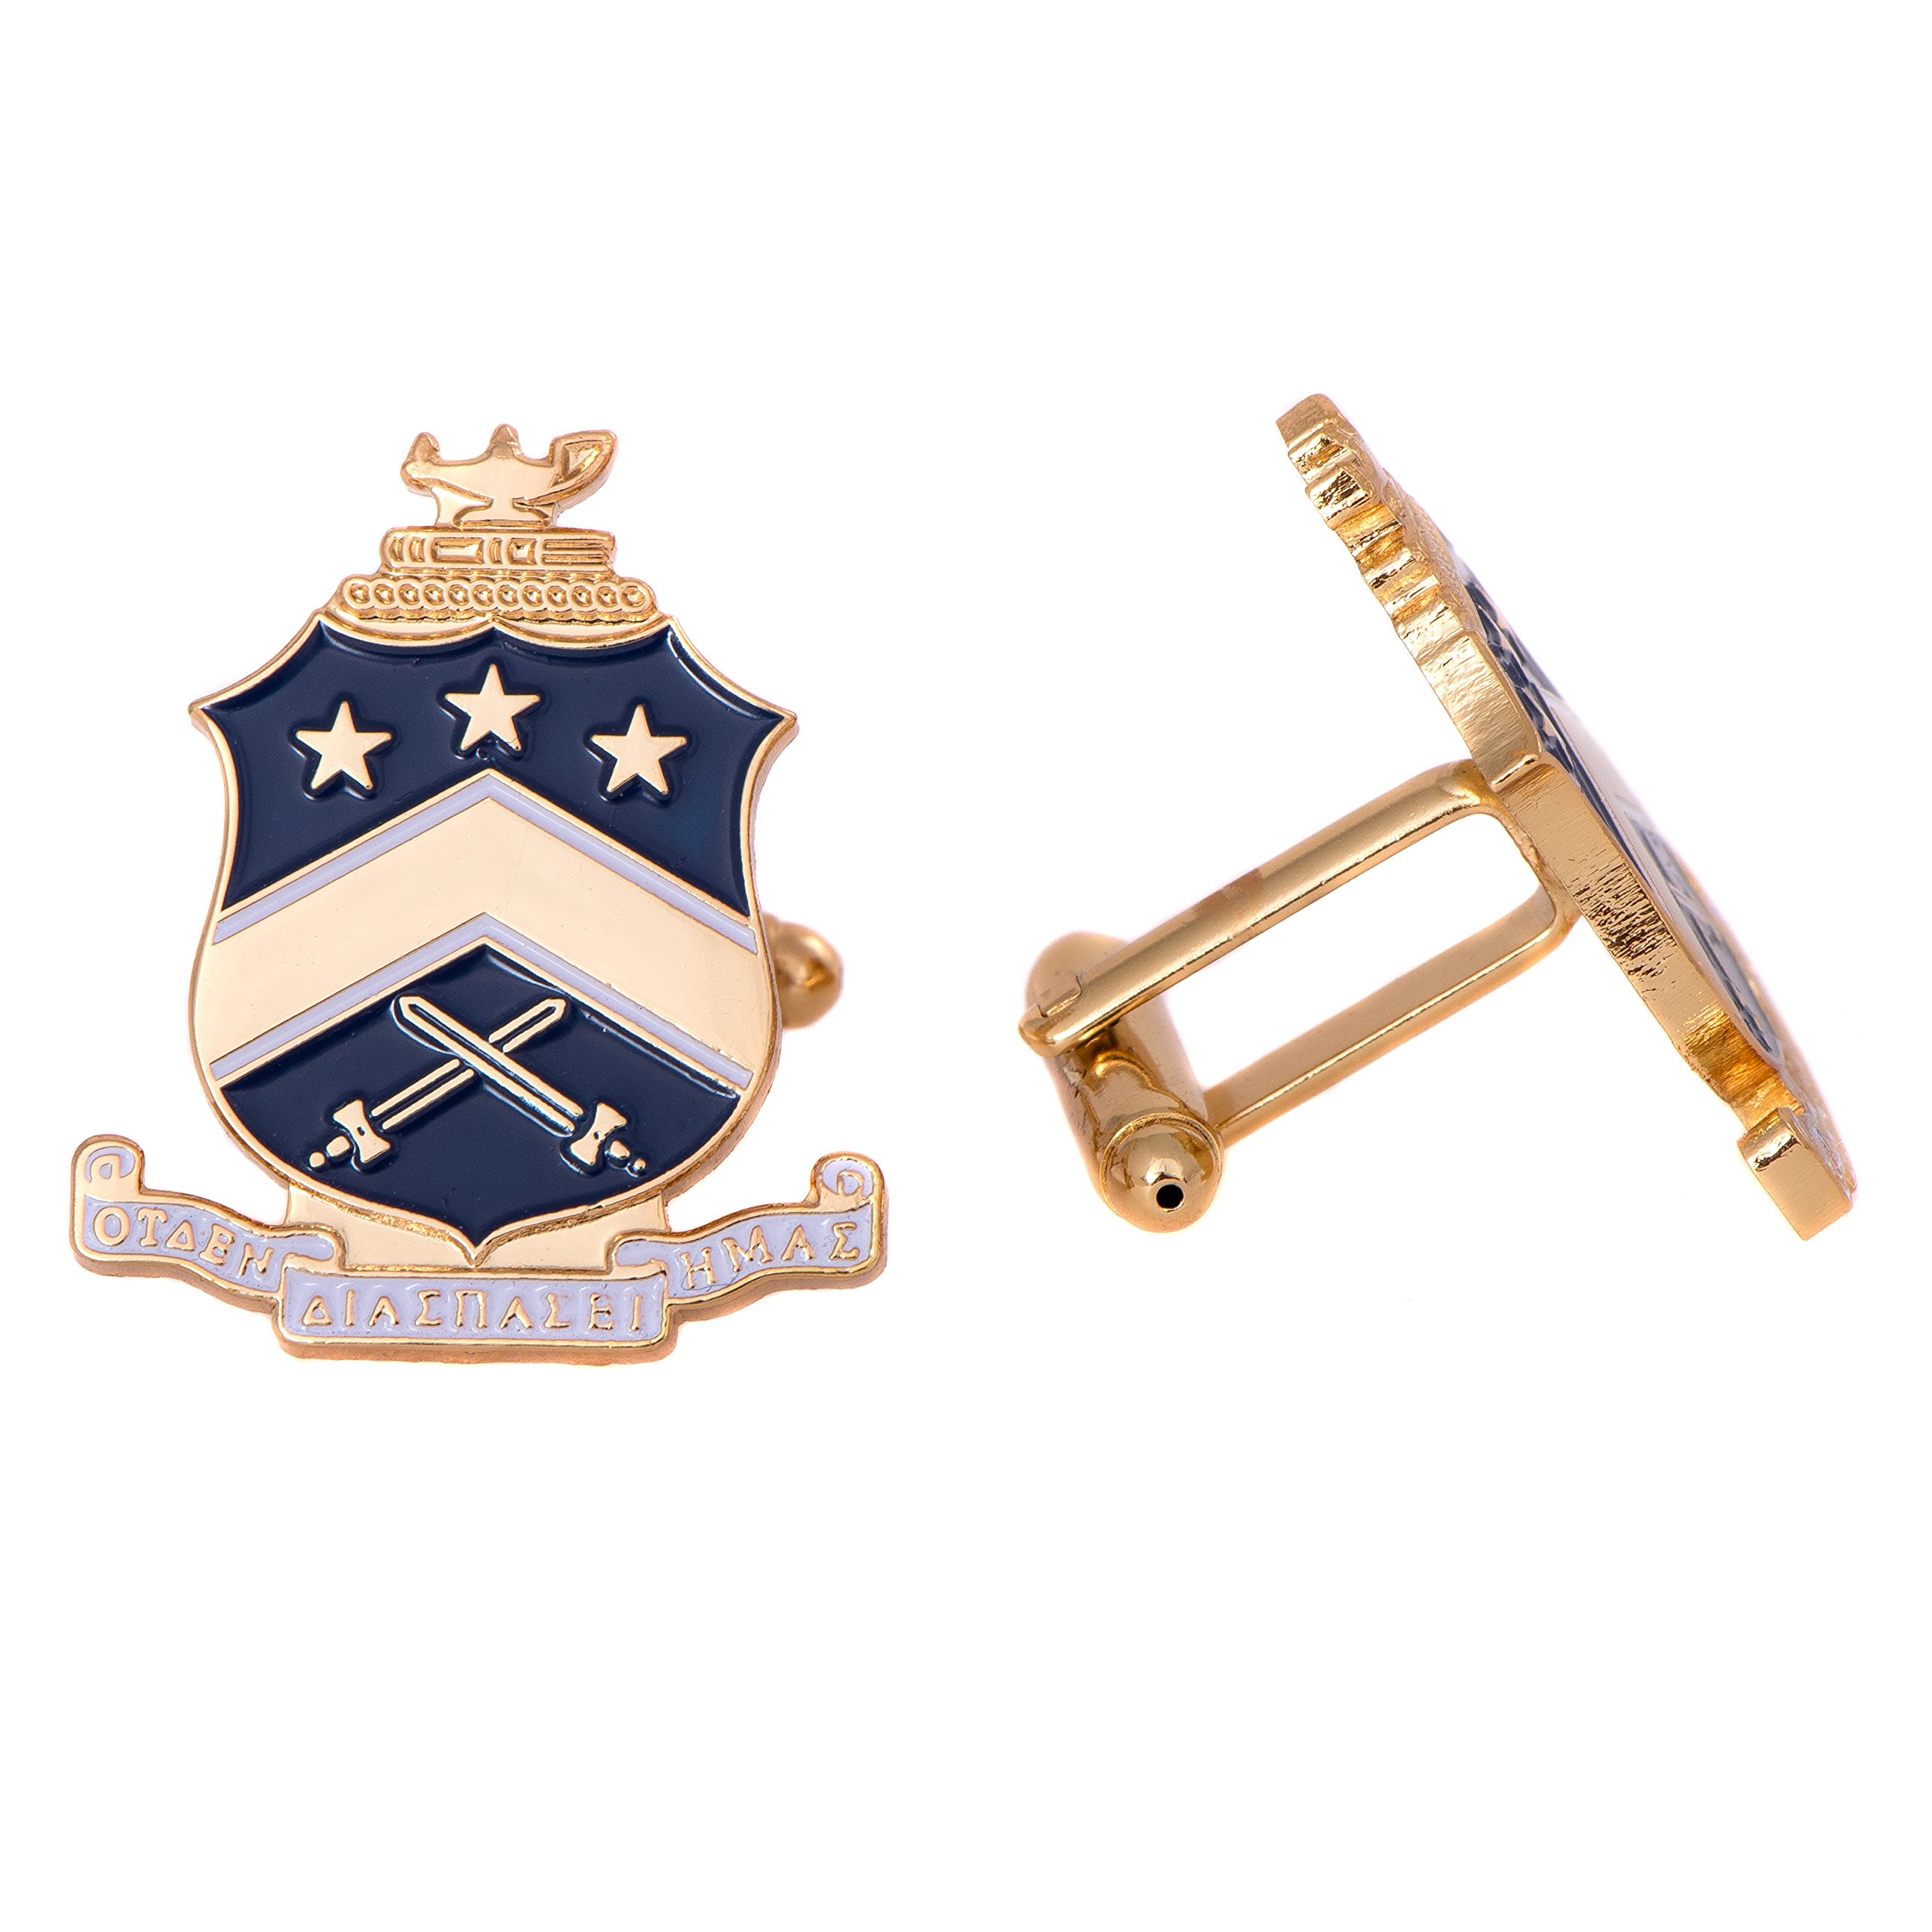 Desert Cactus Pi Kappa Phi Fraternity Crest Cufflinks Greek Formal Wear Blazer Jacket Pi Kapp by Desert Cactus (Image #1)